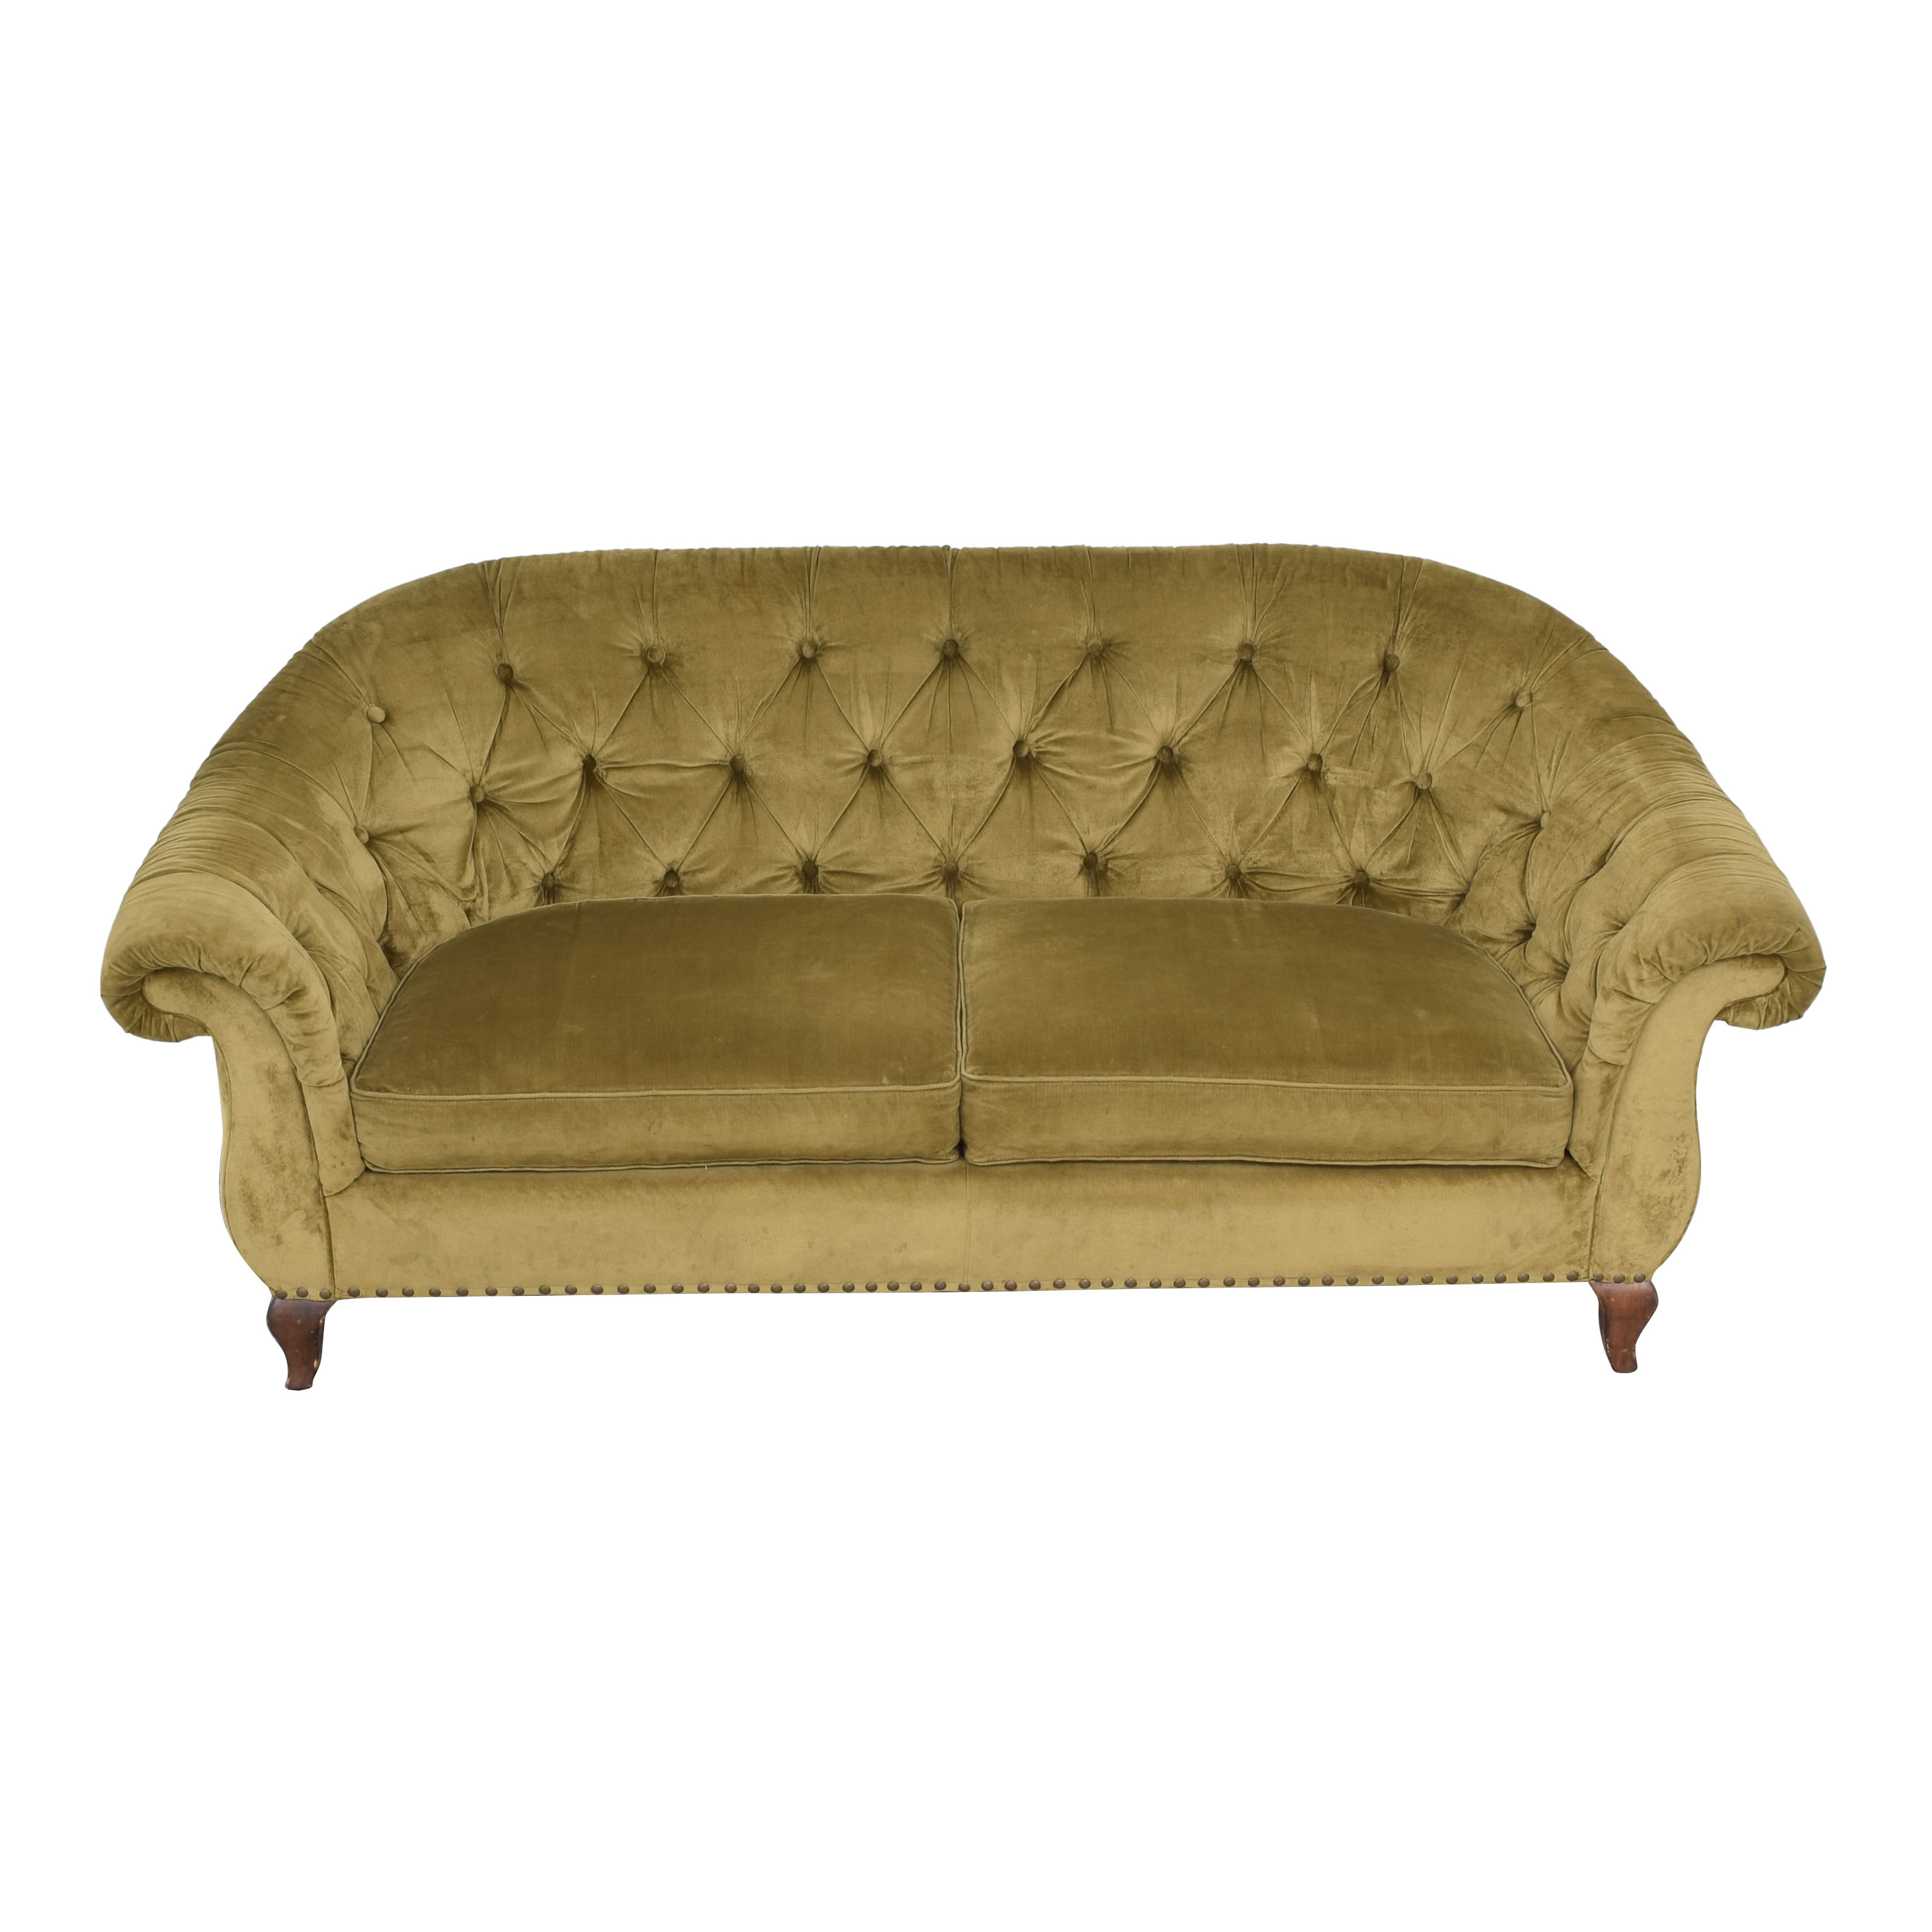 Ralph Lauren Home Ralph Lauren Home Velvet Sofa for sale